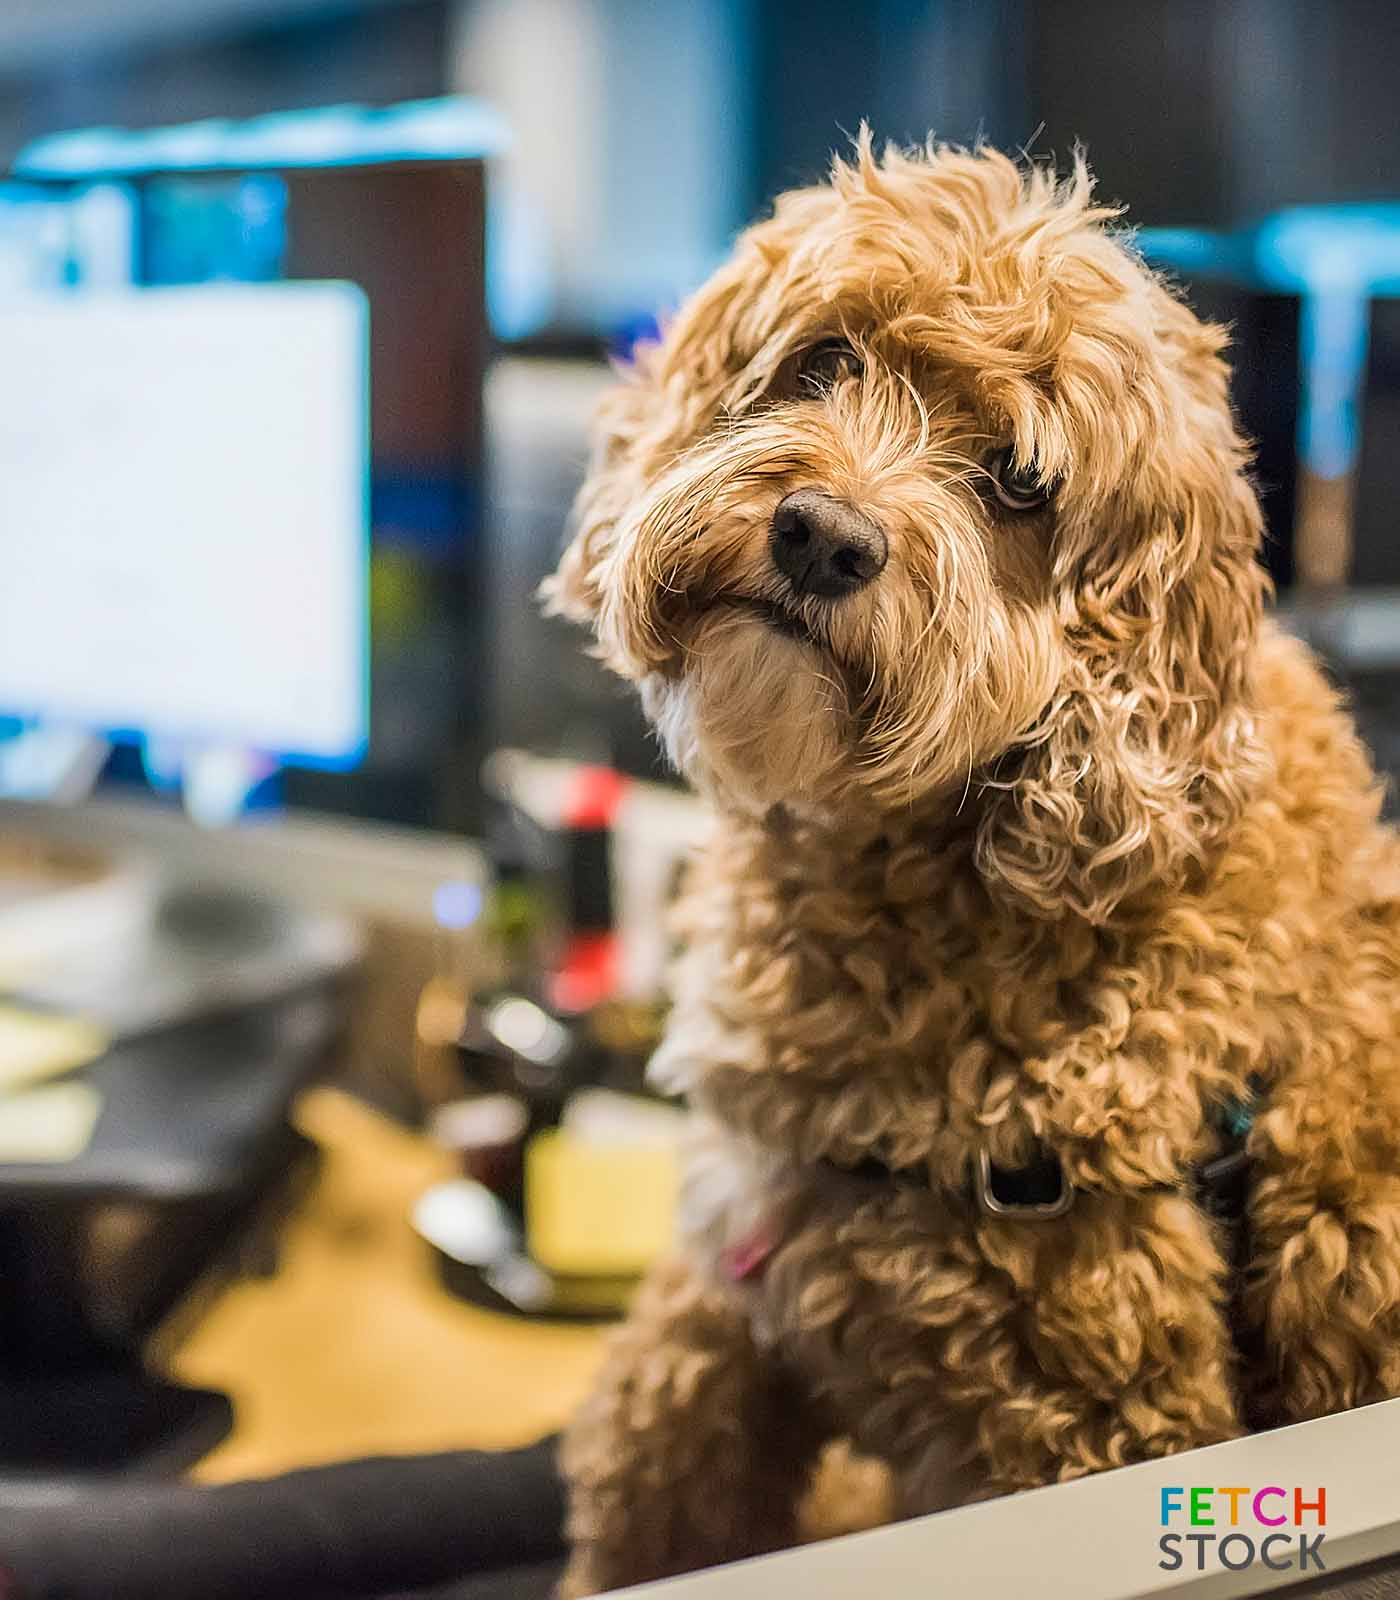 Poodle mix dog tilting it's head in an office environment